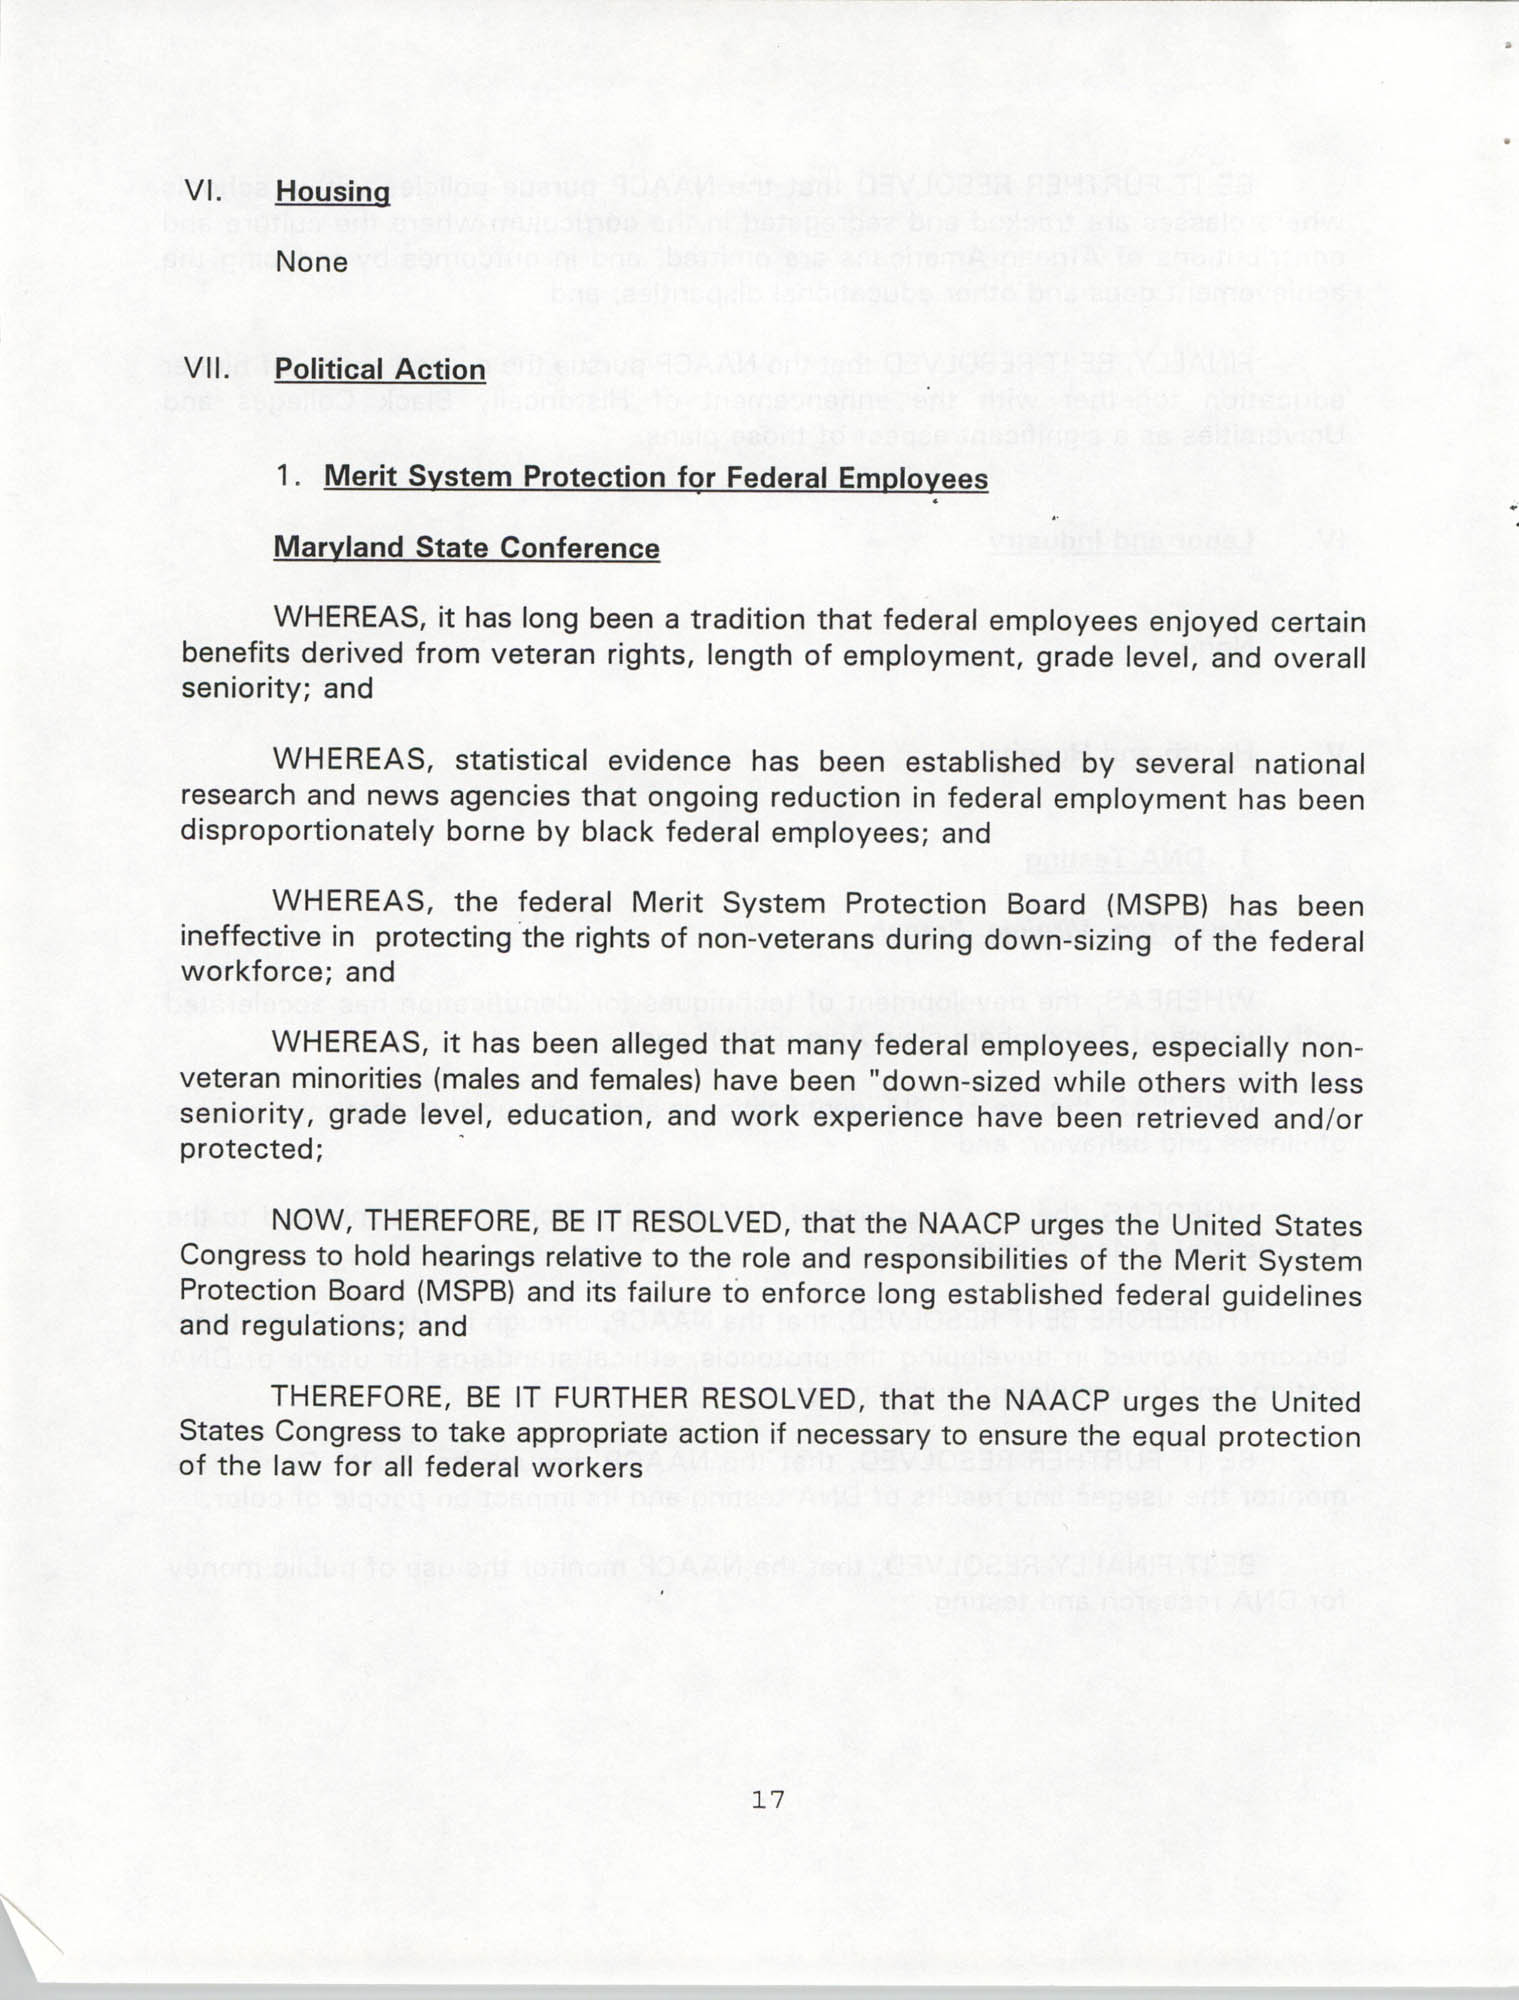 Resolutions Submitted Under Article X, Section 2 of the Constitution of the NAACP, 1994, Page 17